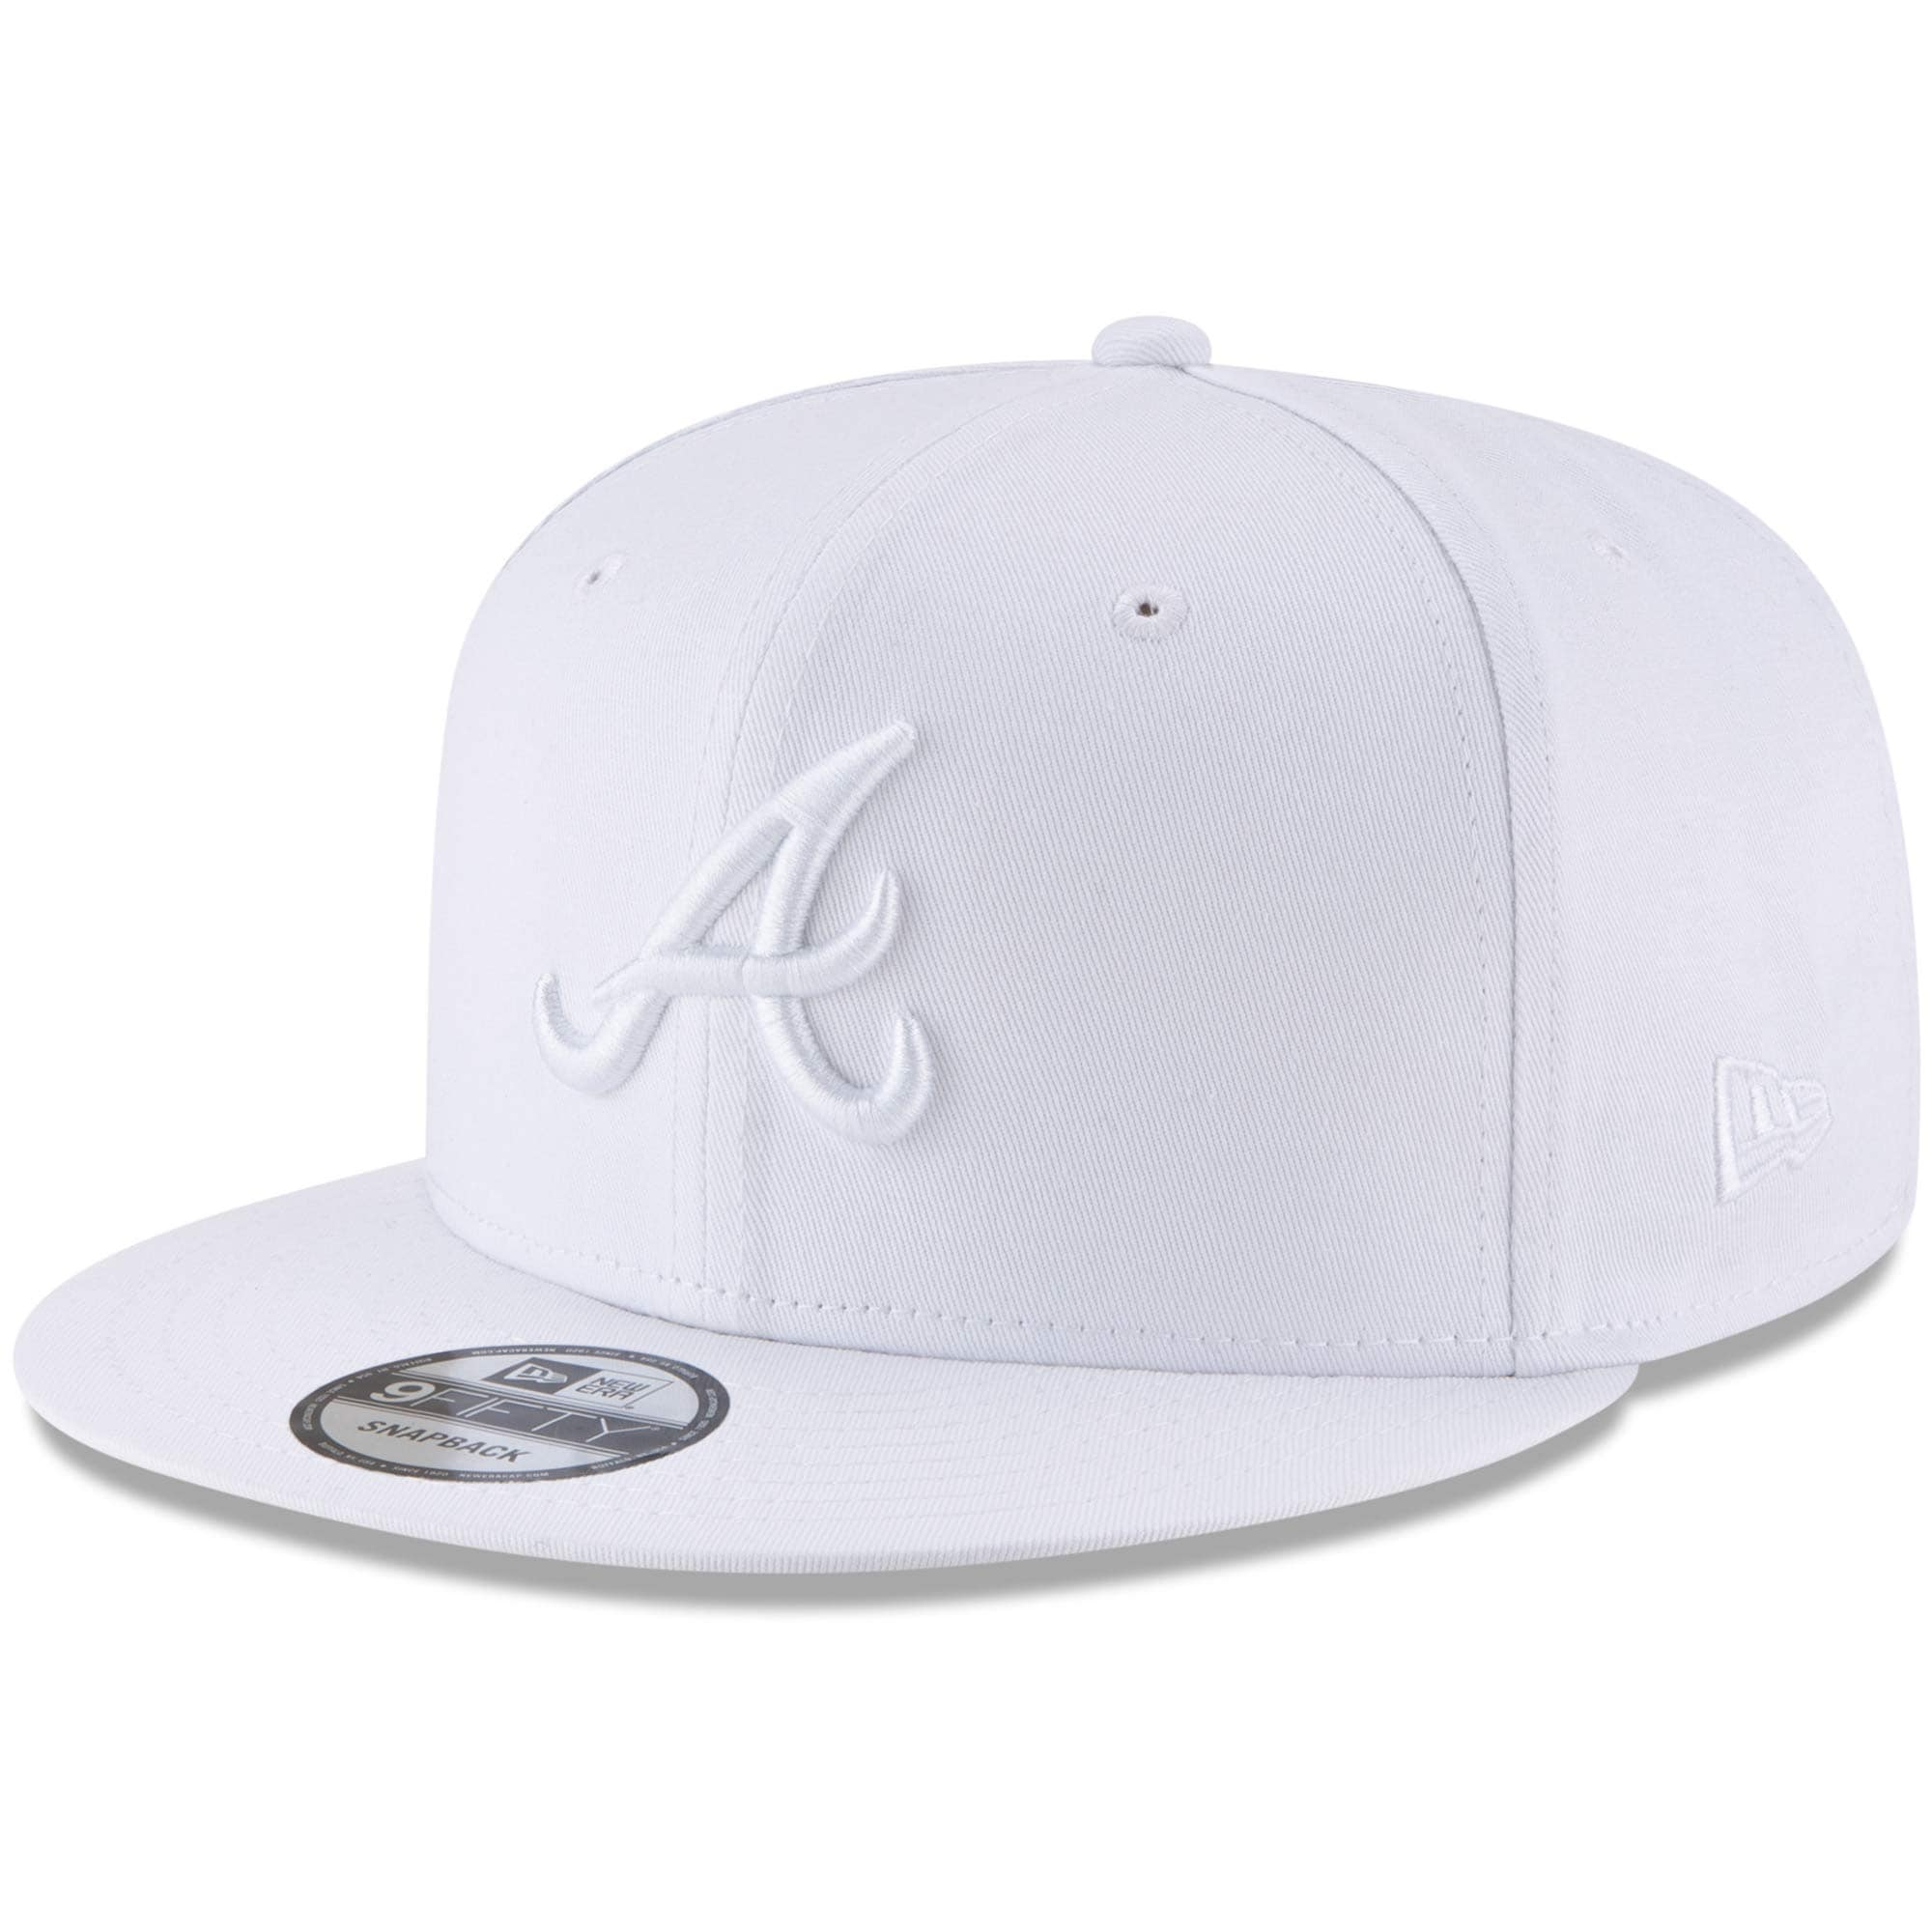 ROYAL // WHITE ATLANTA BRAVES LEAGUE BASIC NEW ERA 9FIFTY SNAPBACK